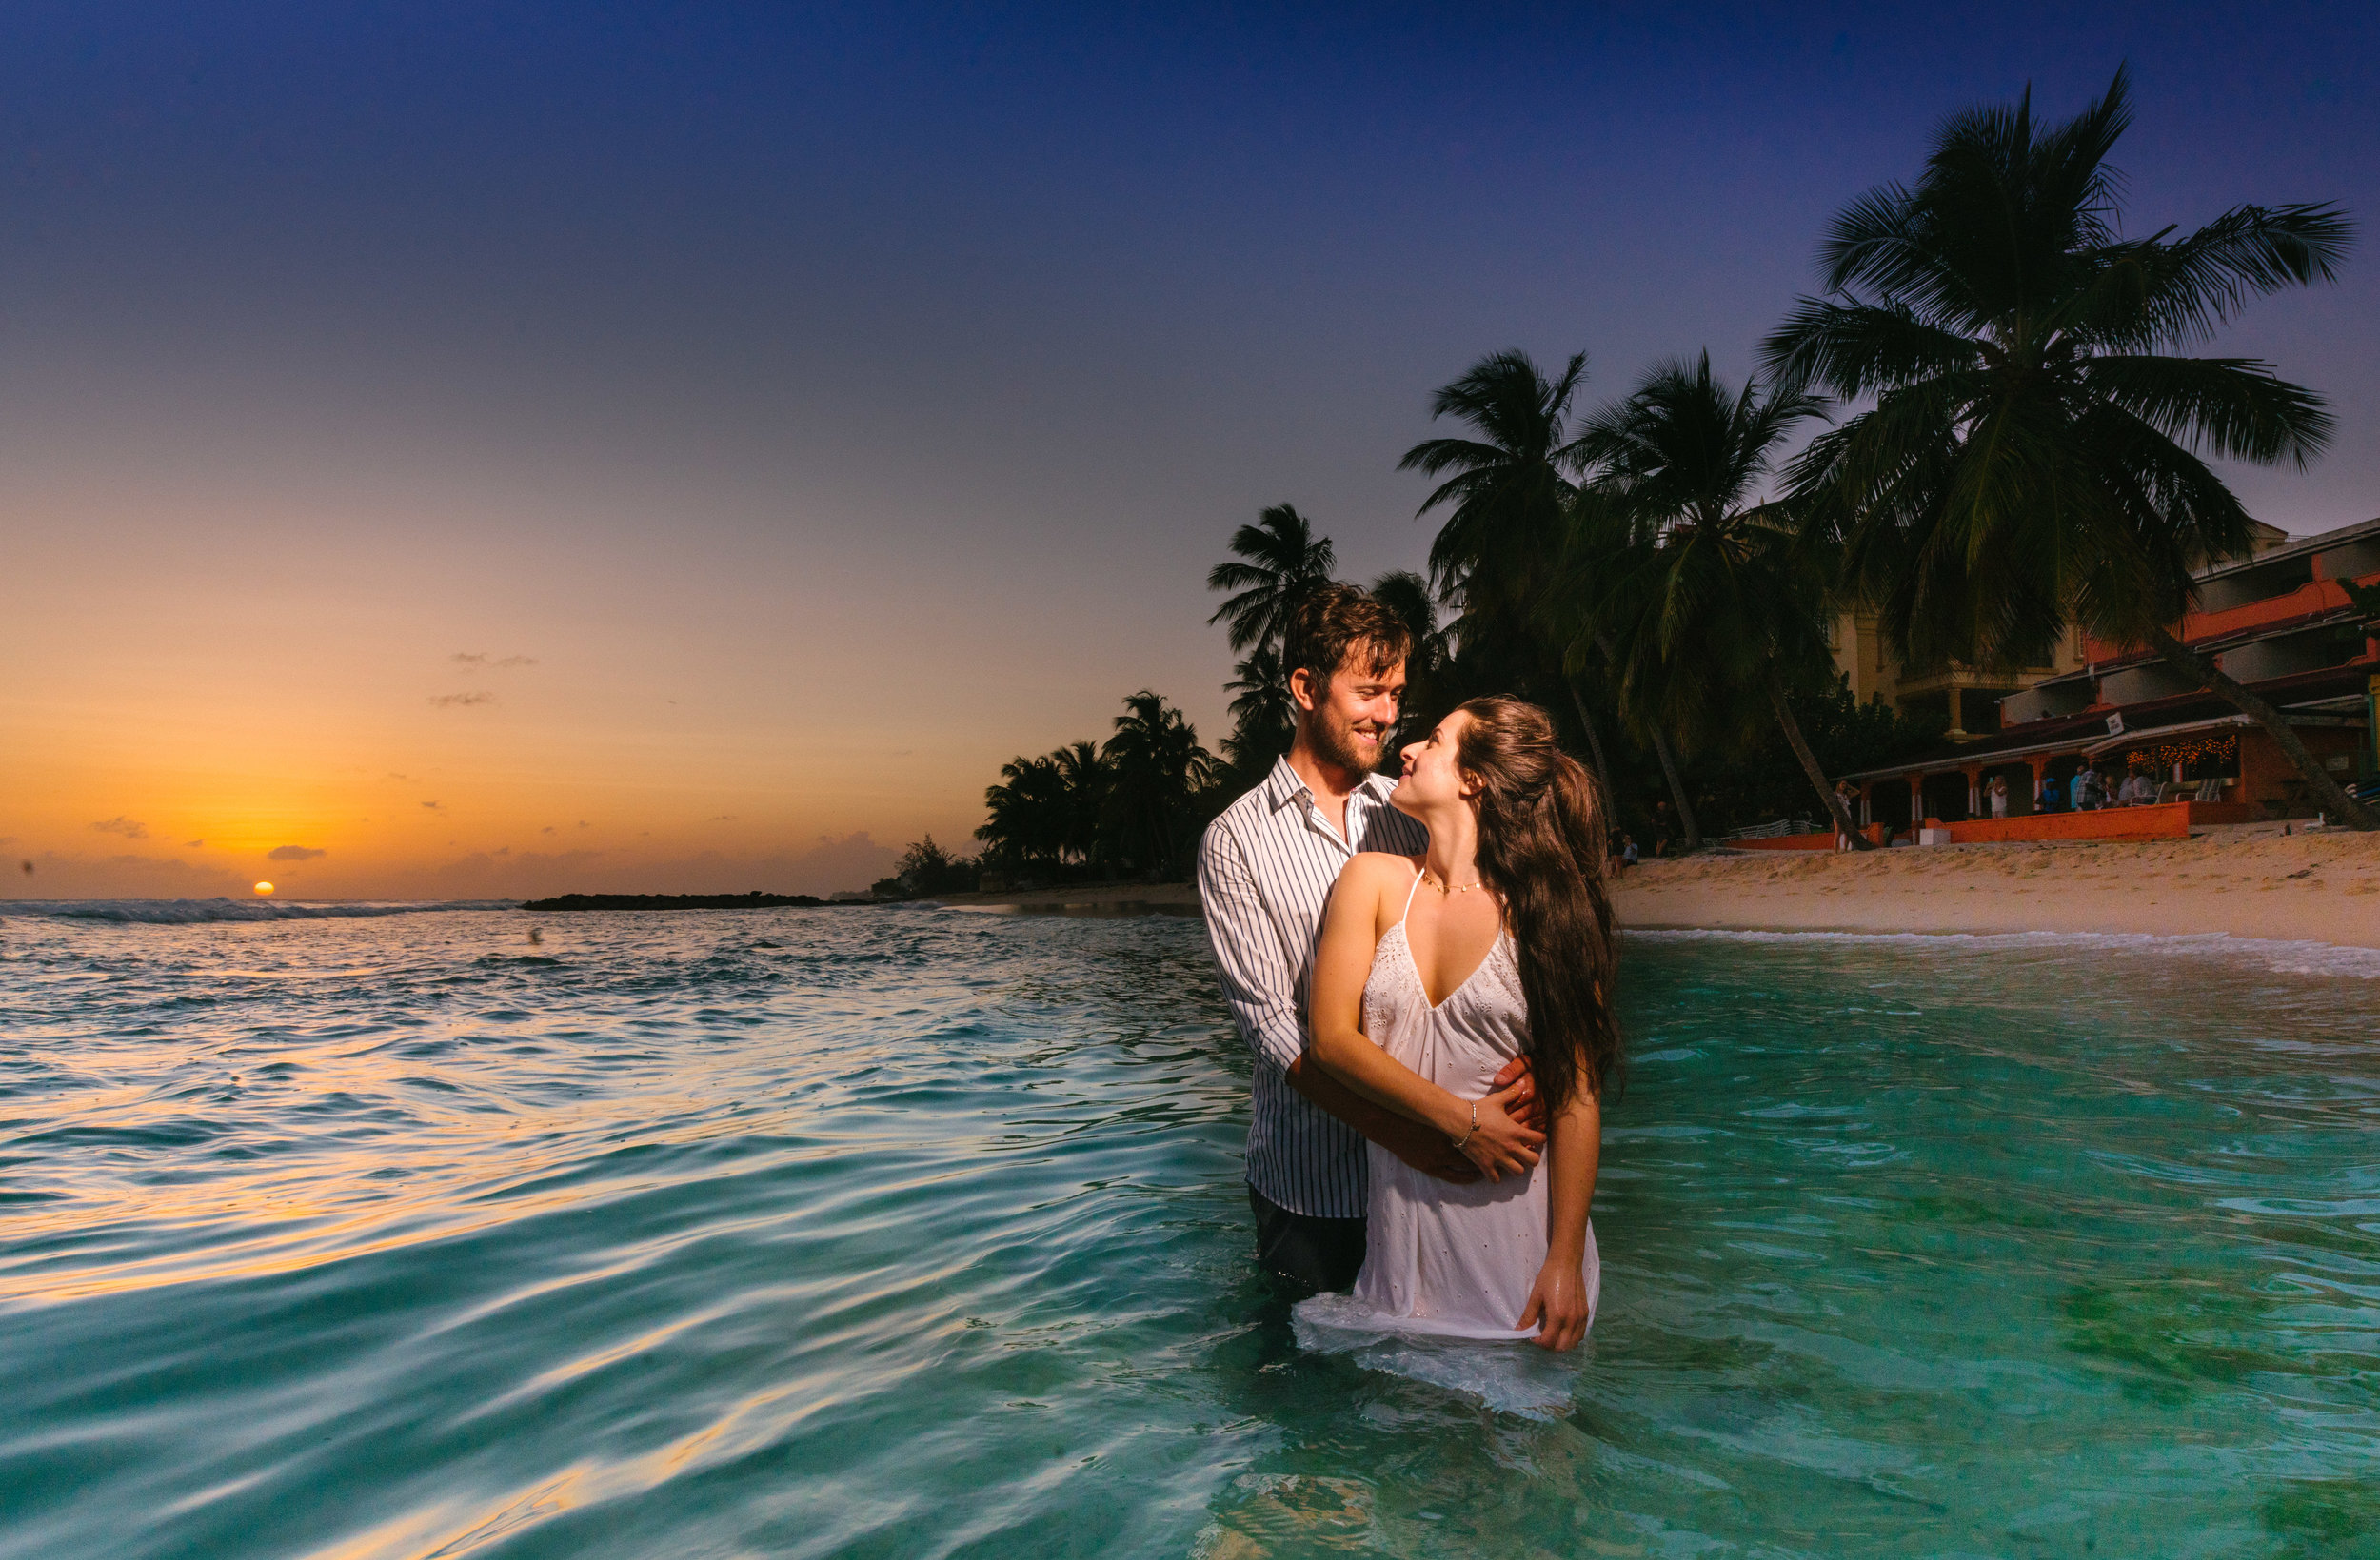 Wedding Couple In Sea In Barbados - Wedding Photography